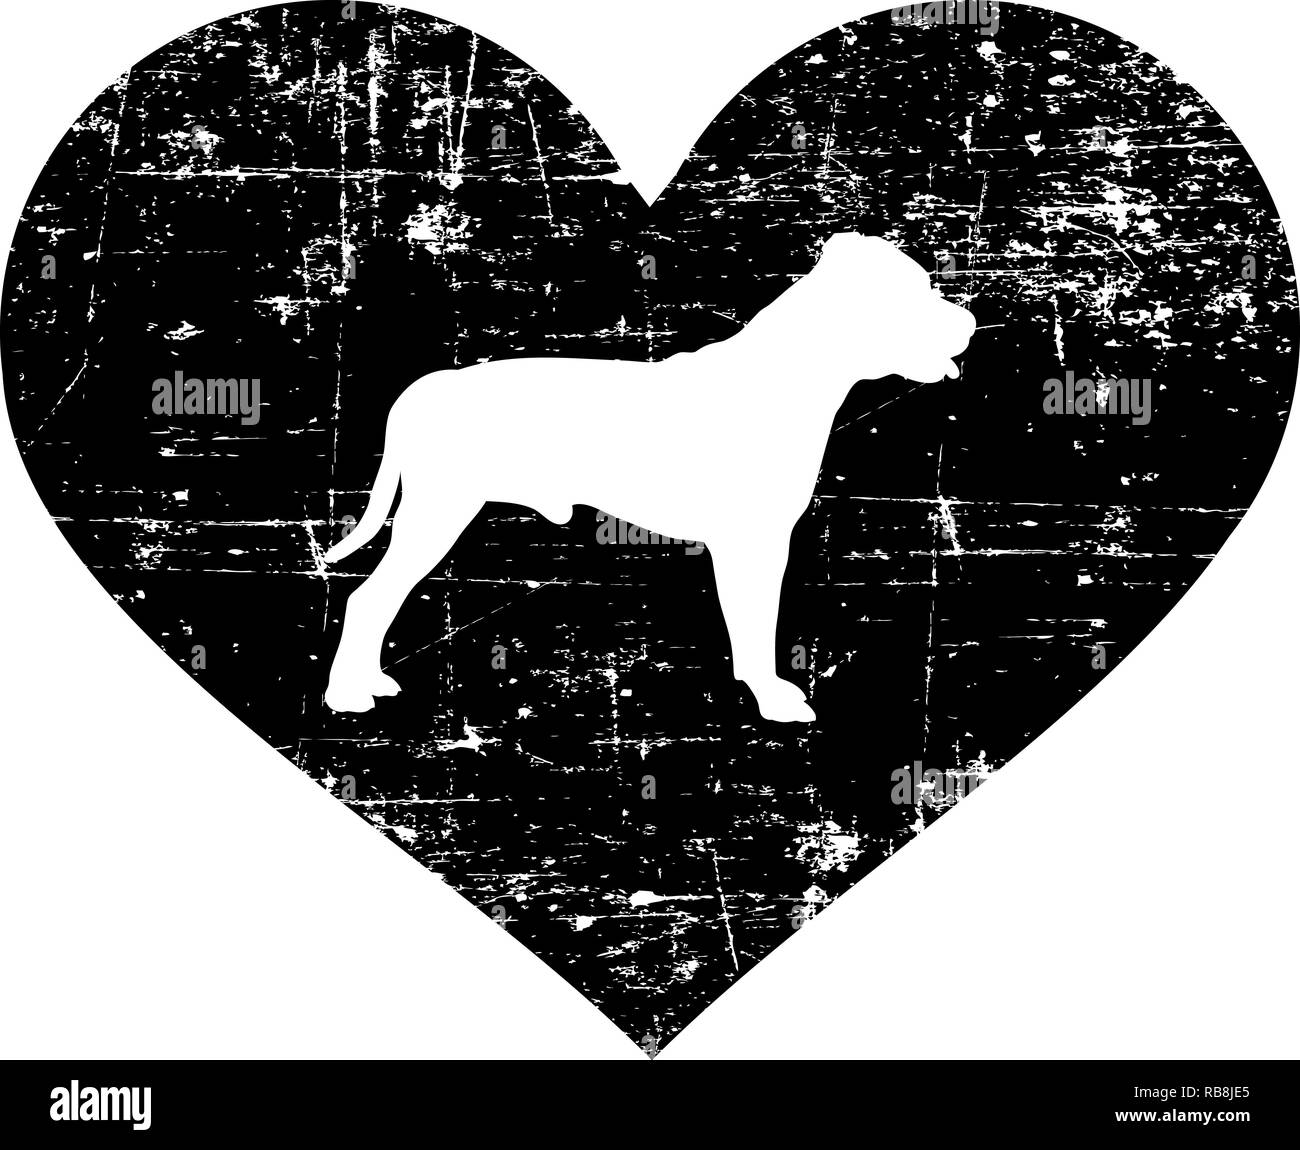 Staffordshire Bull Terrier silhouette in black heart - Stock Image